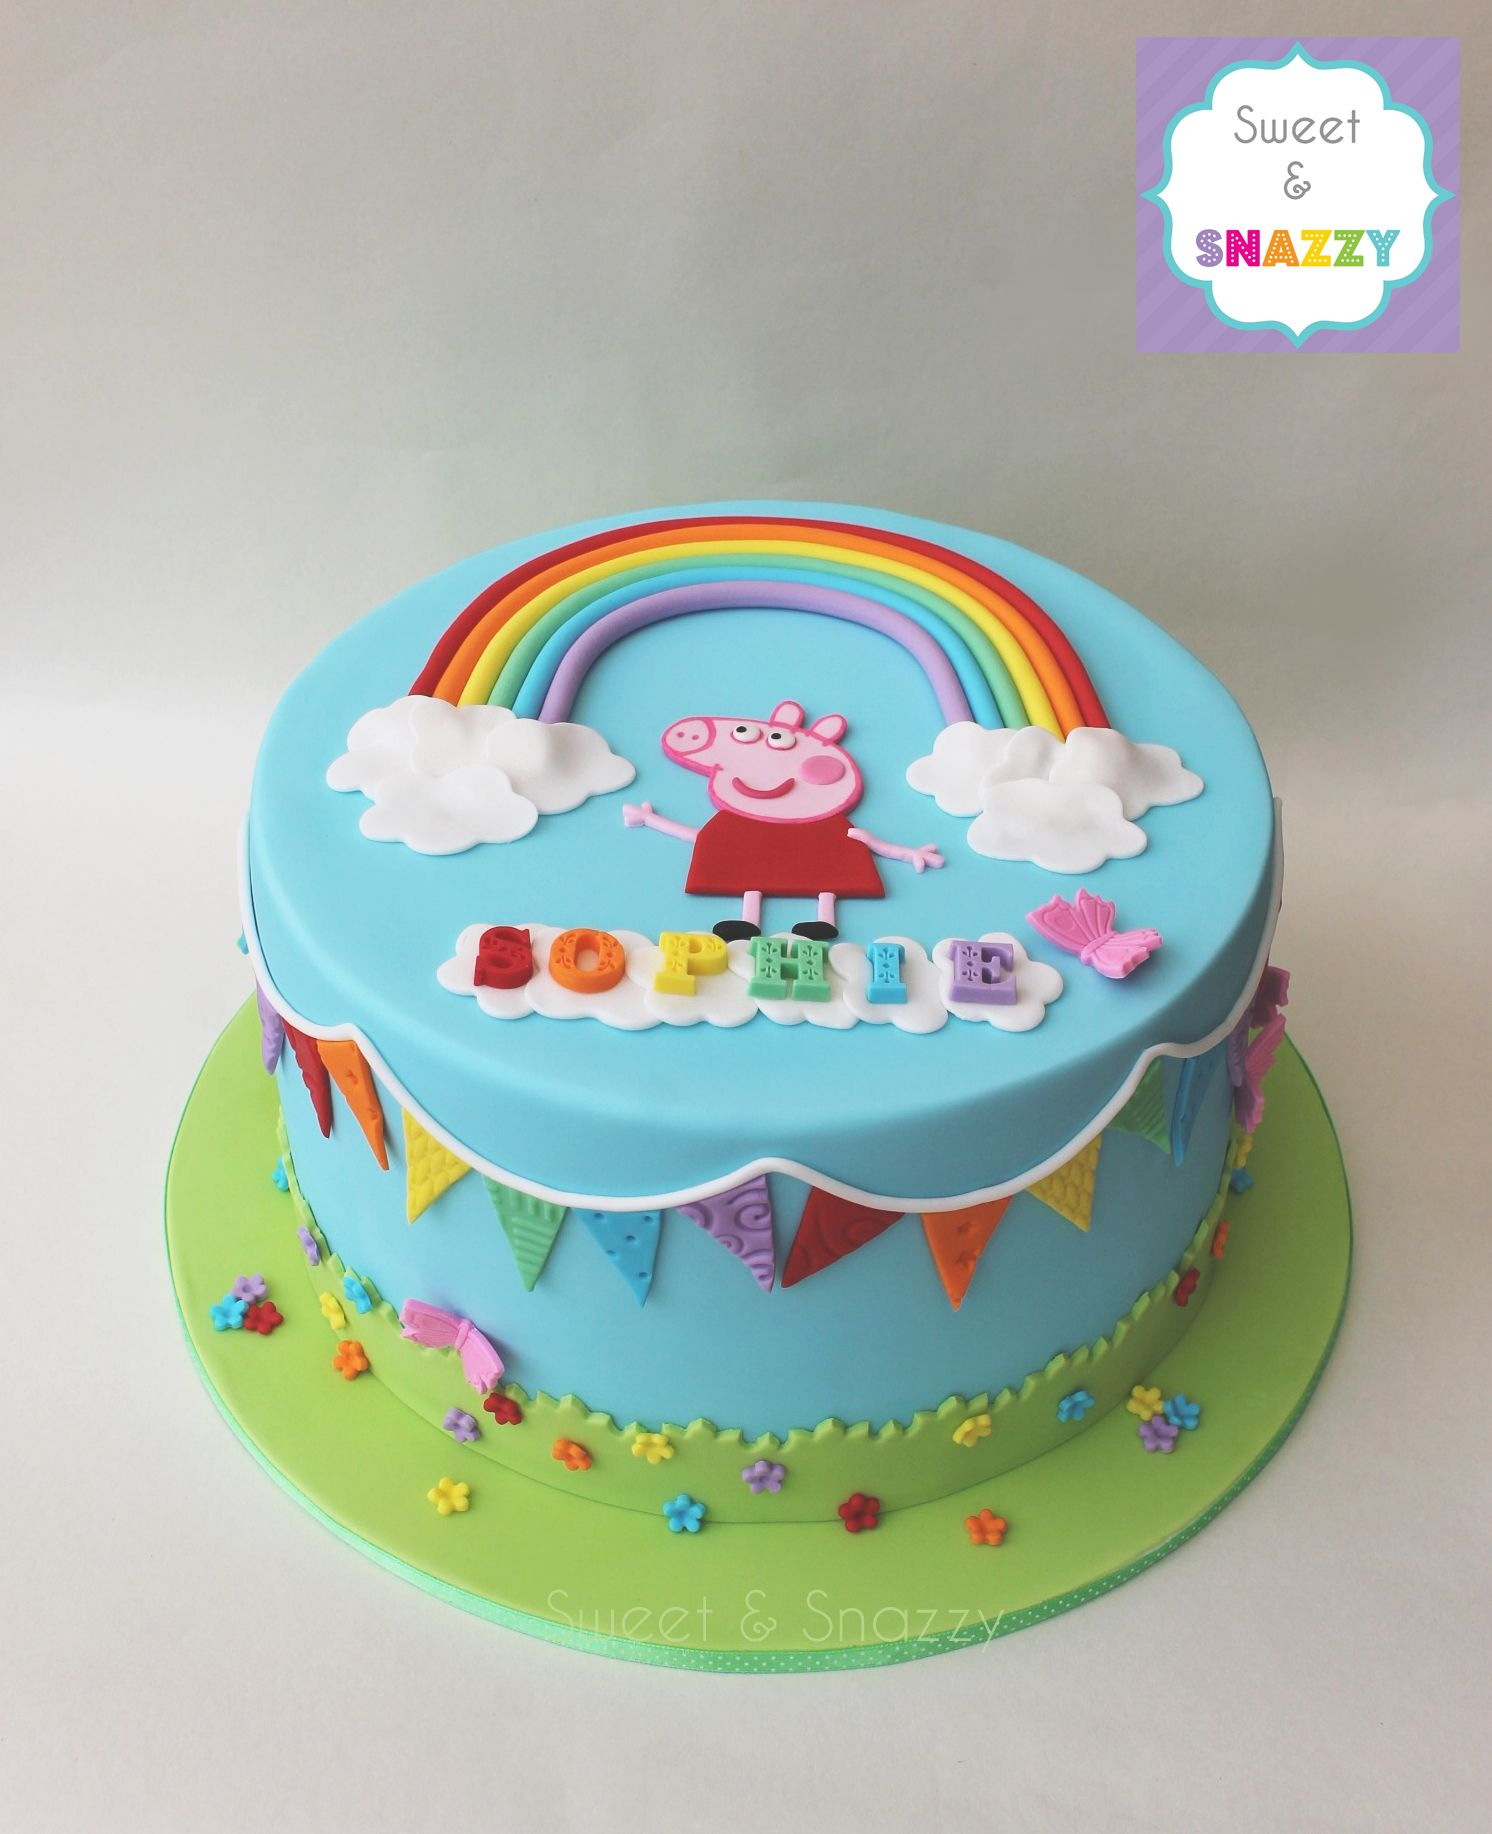 Peppa Pig Cake Peppa Pig Rainbow Cake With Rainbow Bunting By Sweet Snazzy Https Www Facebook C Pig Birthday Cakes Peppa Pig Birthday Cake Peppa Pig Cake